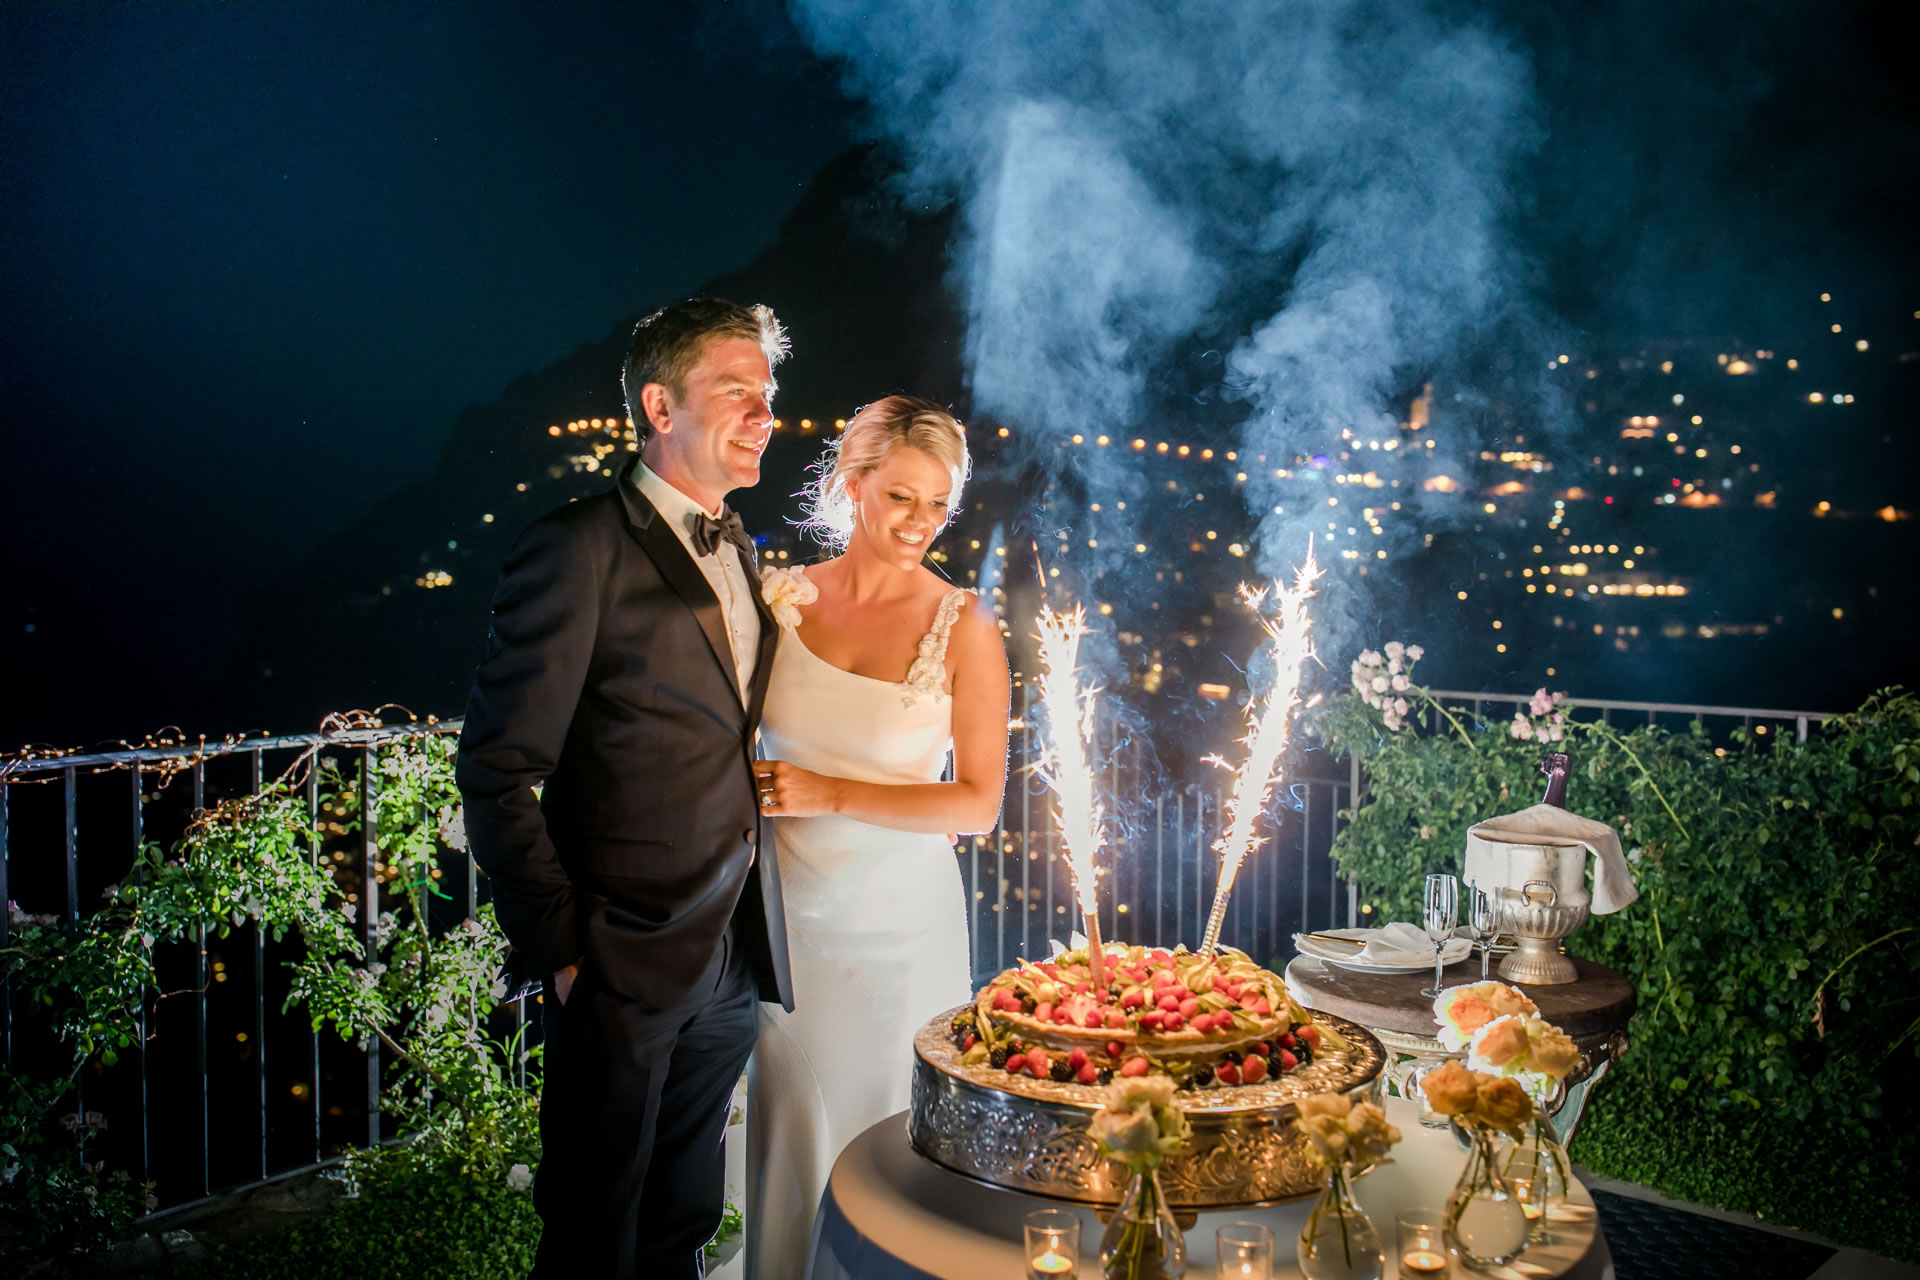 Wedding Cake - 61 :: Wedding in Positano. Sea and love :: Luxury wedding photography - 60 :: Wedding Cake - 61